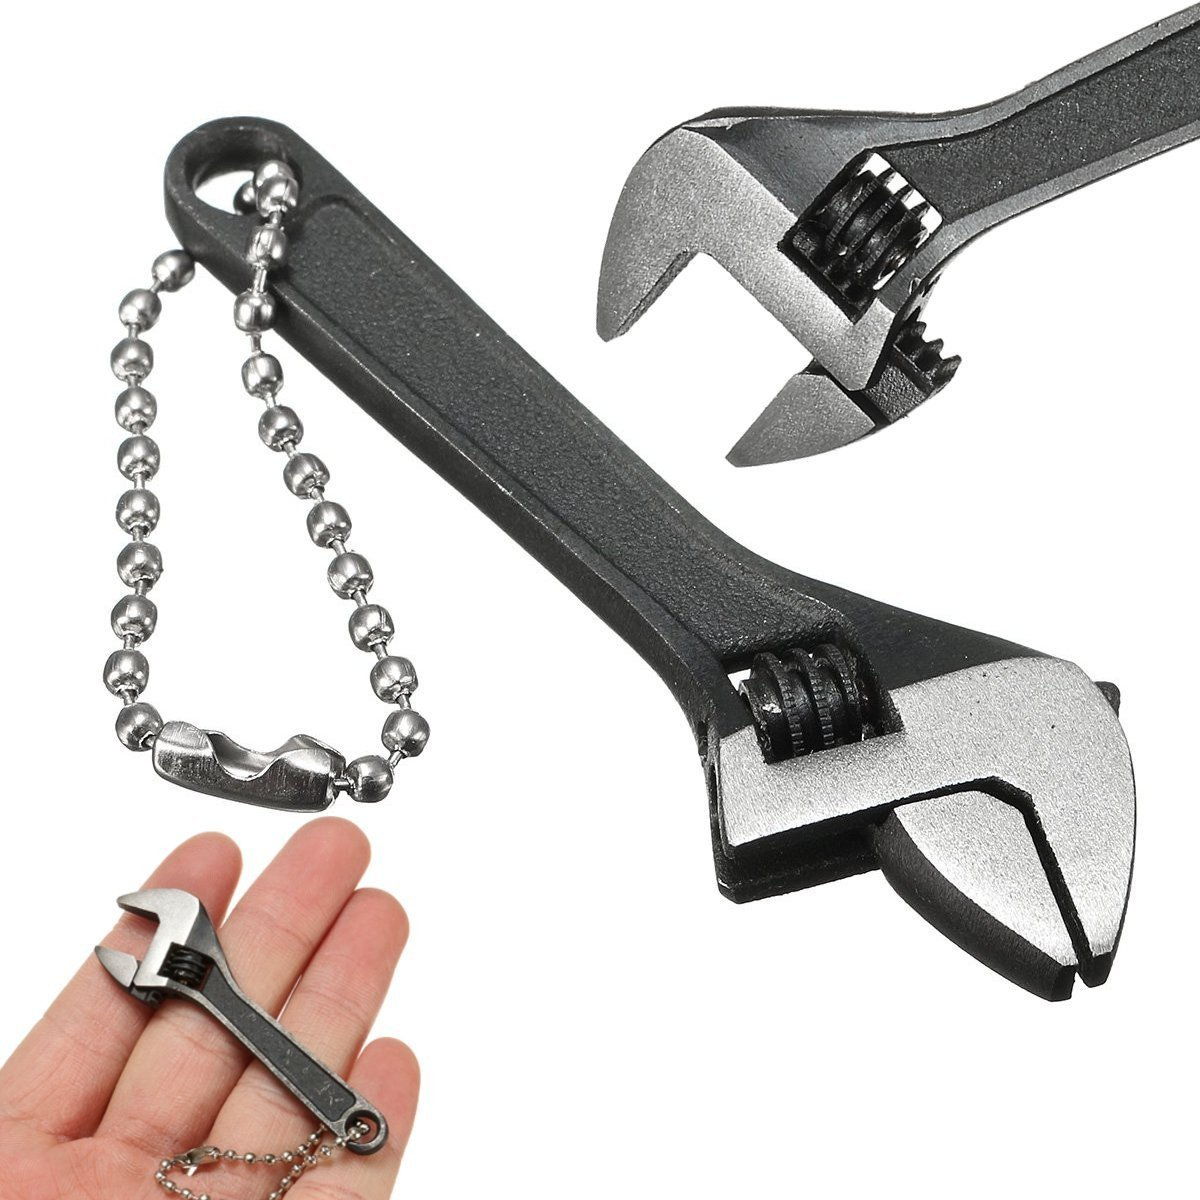 INNI 66mm 2.6inch Mini Metal Adjustable Wrench Spanner Hand Tool 0-10mm Jaw Wrench Black